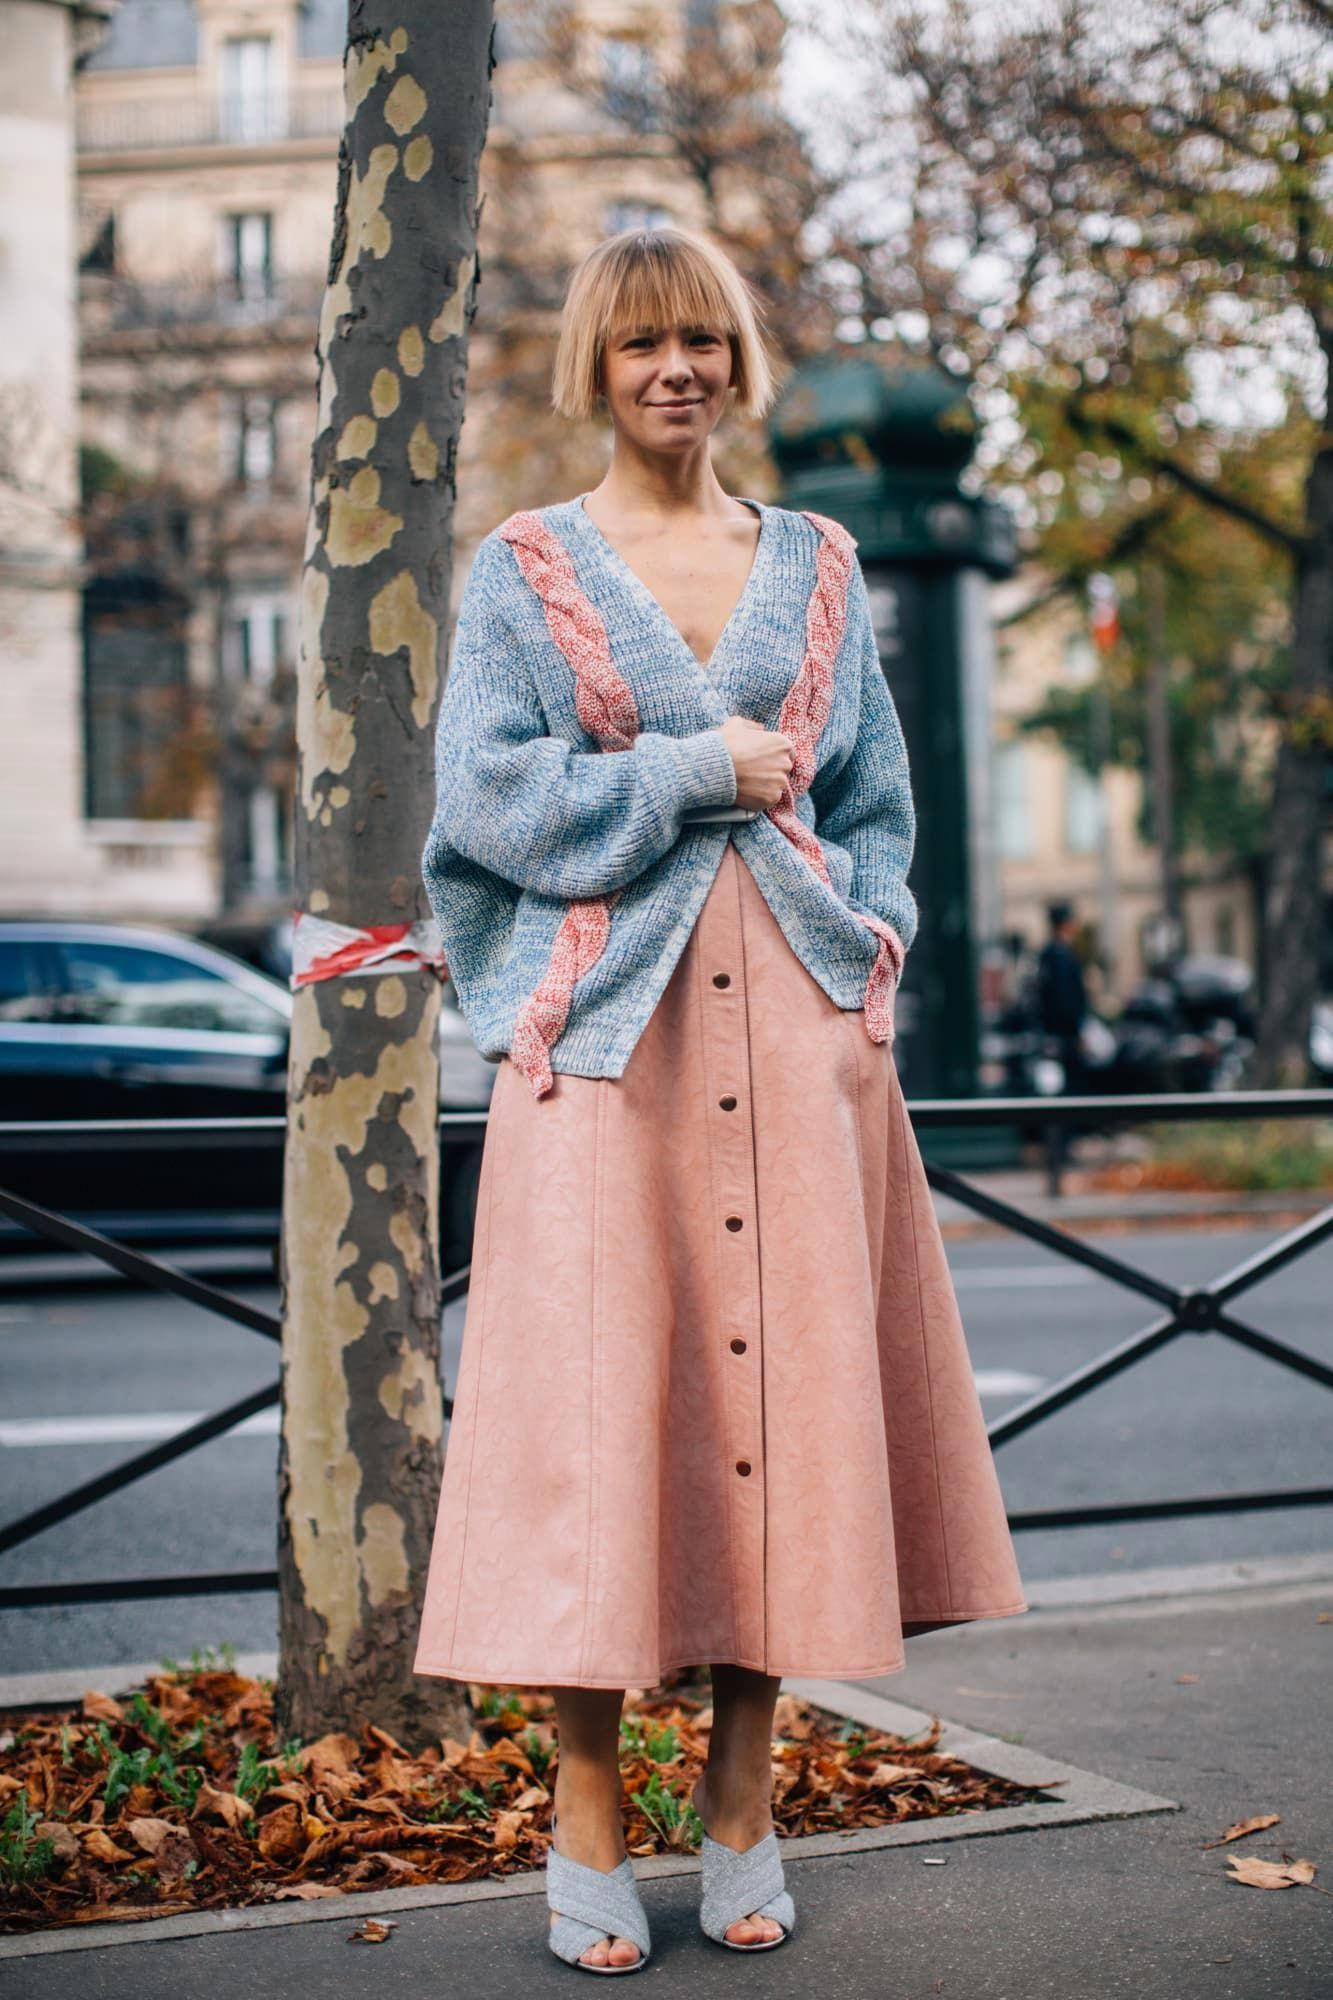 The Best Street Style Looks From Fashion Month Spring